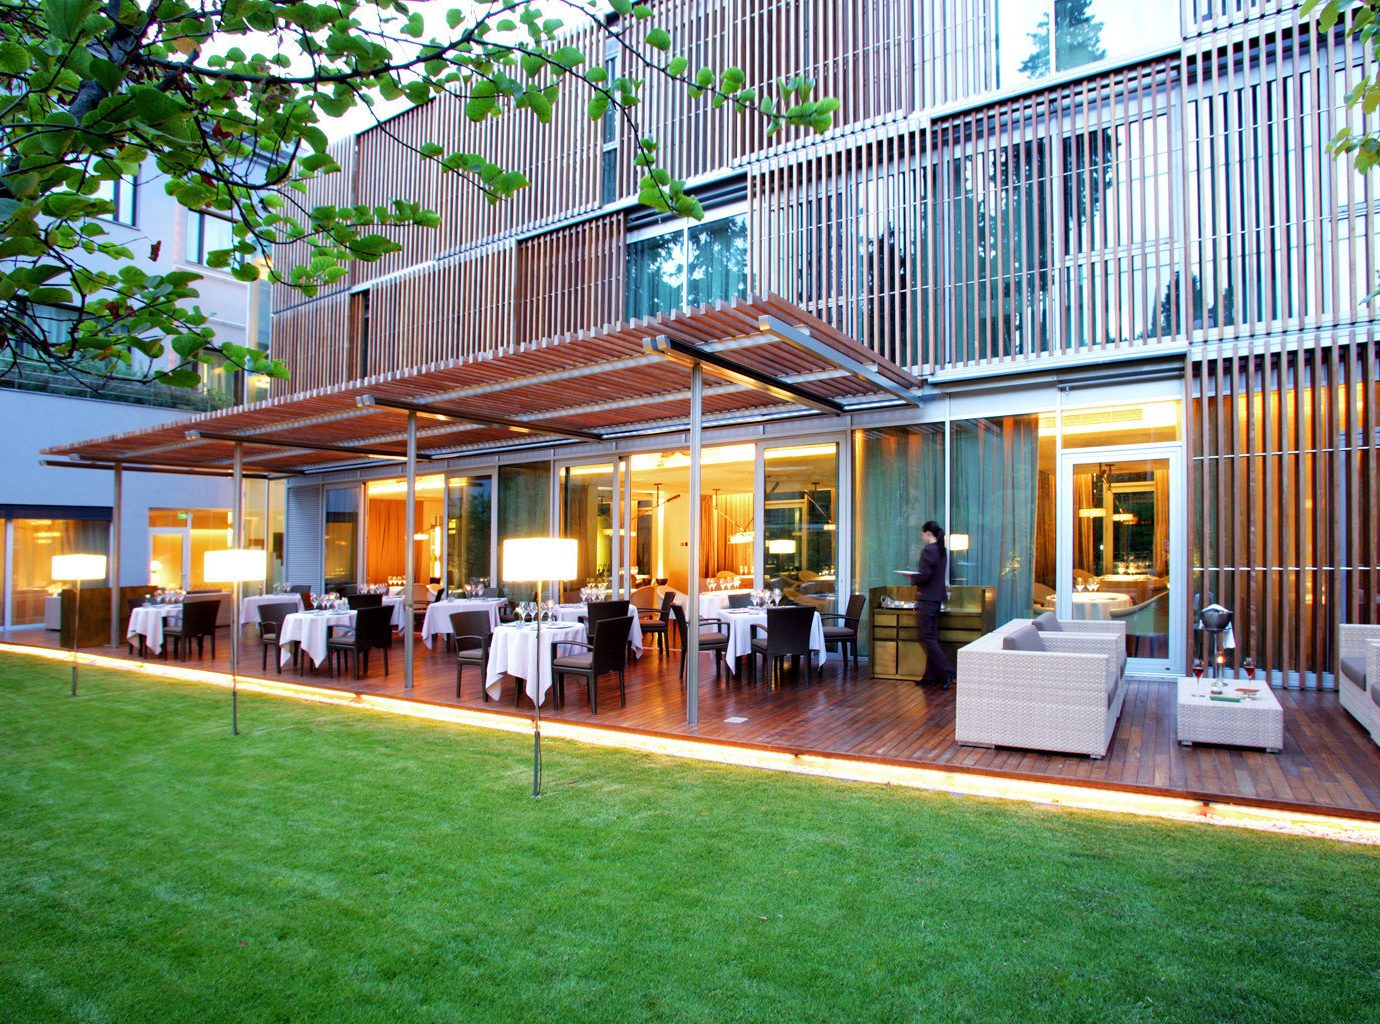 Bar Boutique Hotels Dining Drink Eat Hotels Lounge Modern grass outdoor leisure property building house home condominium estate neighbourhood residential area real estate Resort facade park Courtyard